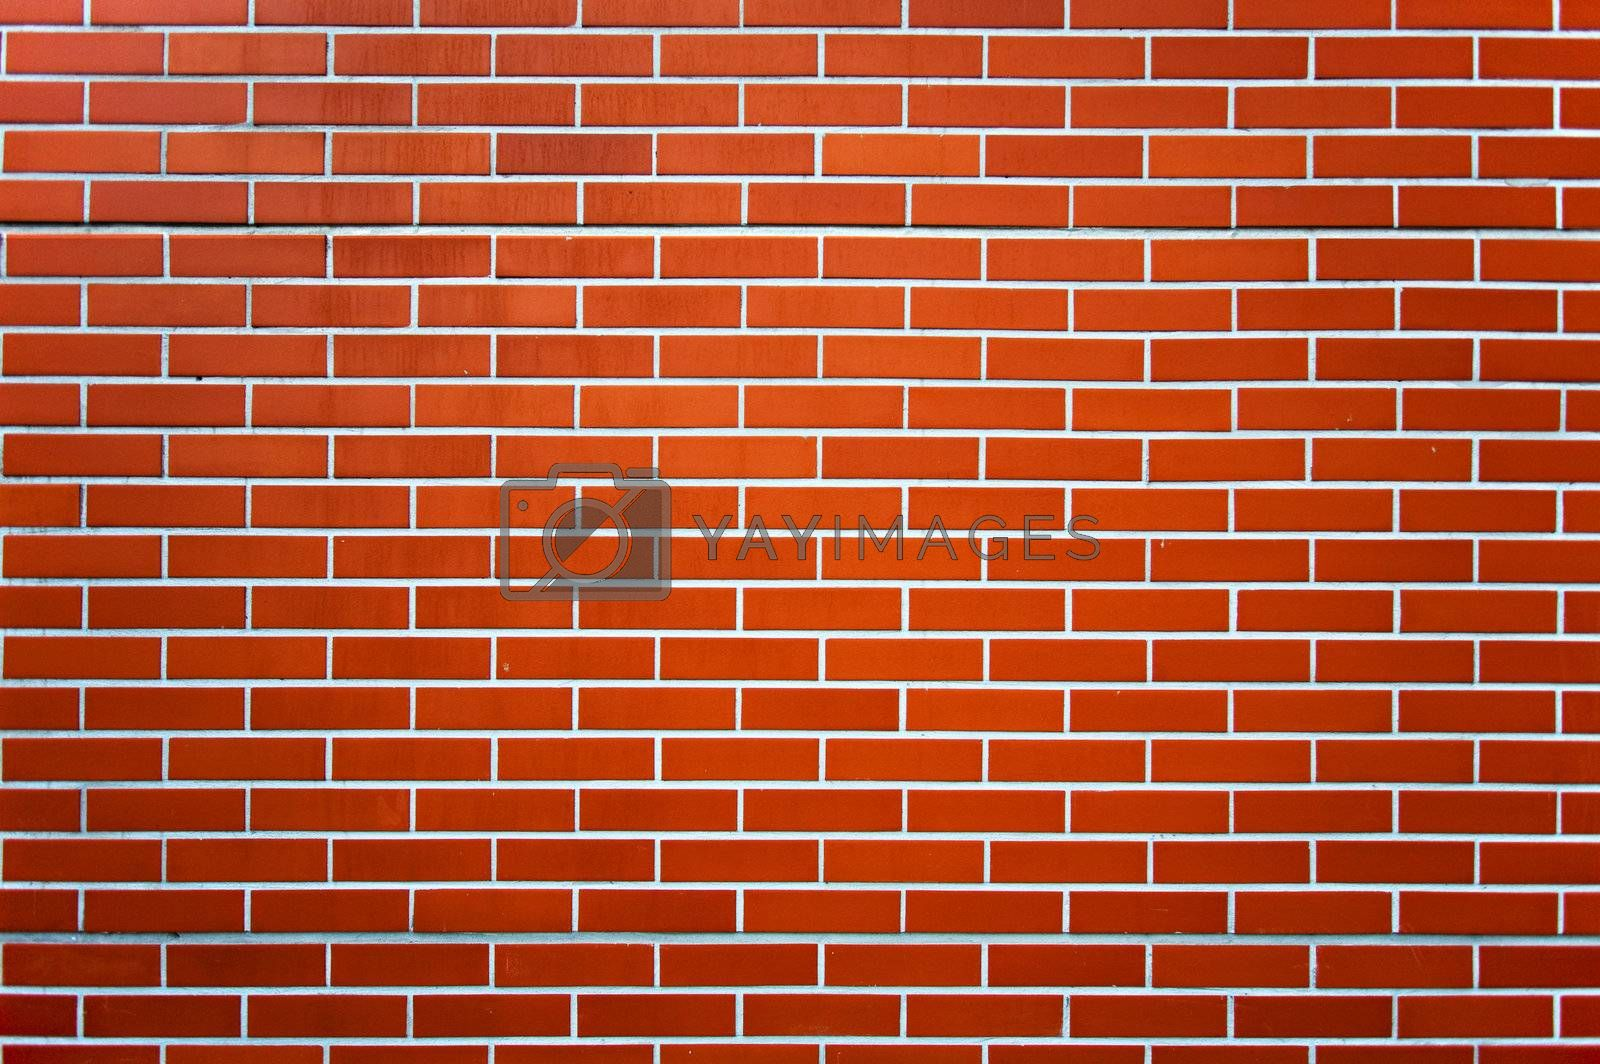 Photo of a red brick wall pattern.